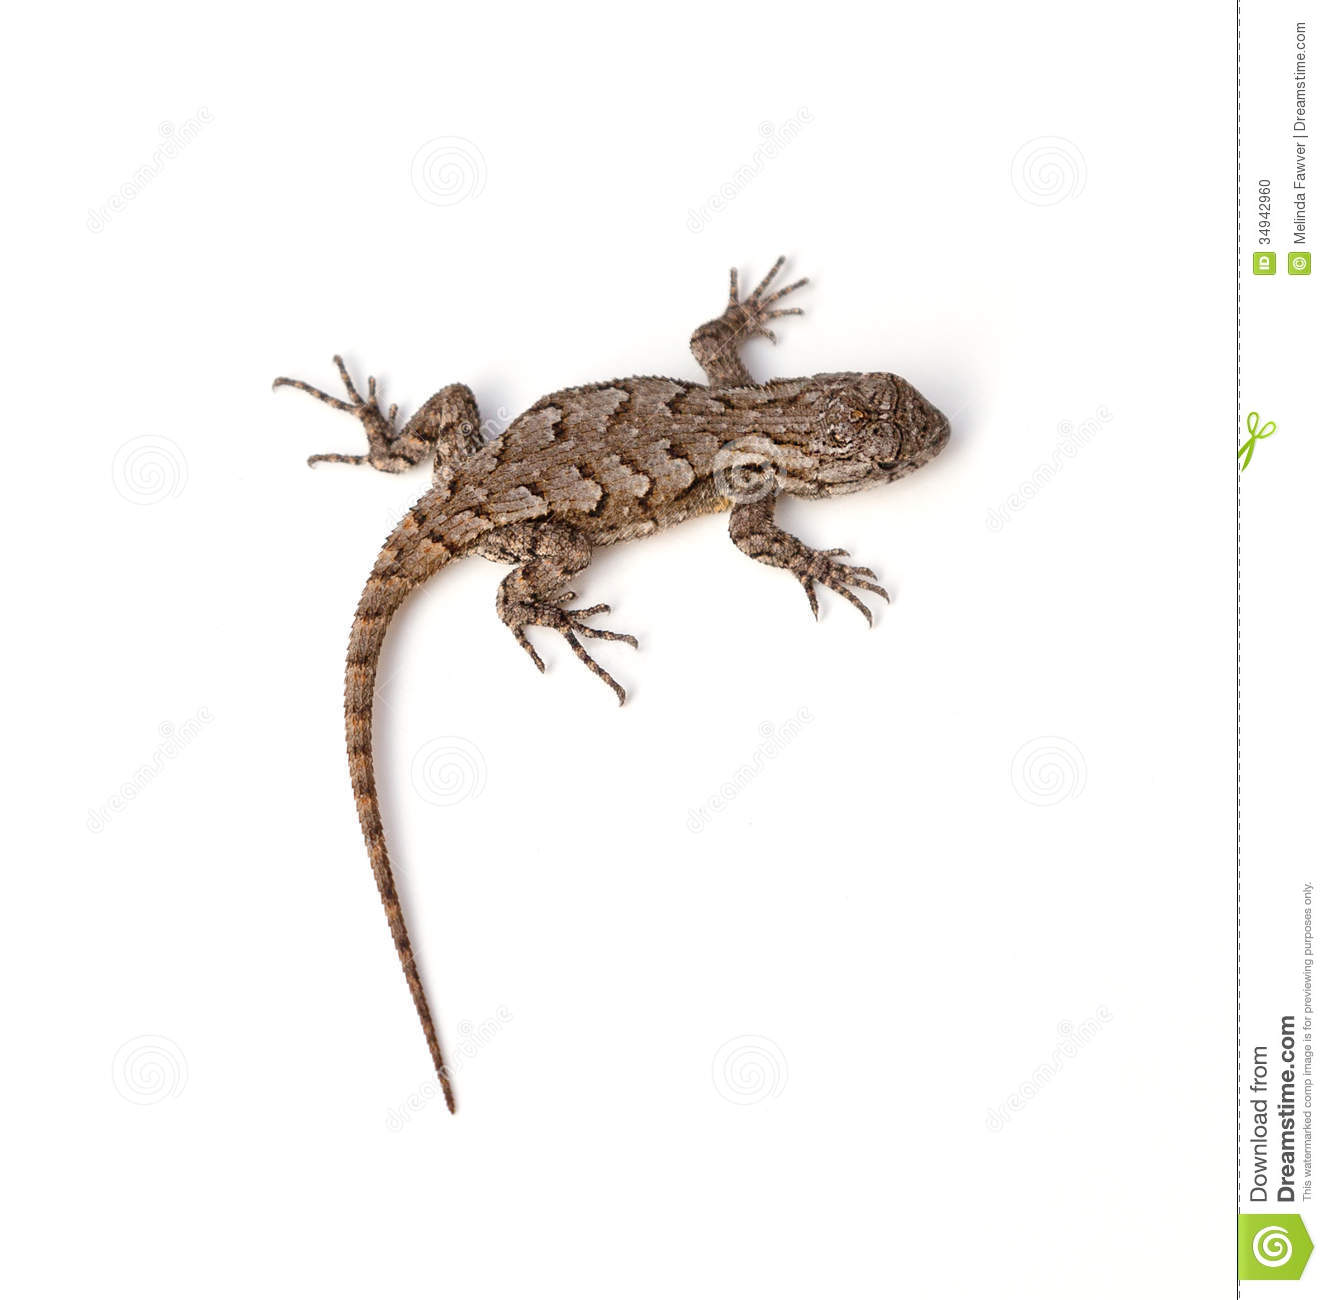 Eastern Fence Lizard clipart #20, Download drawings